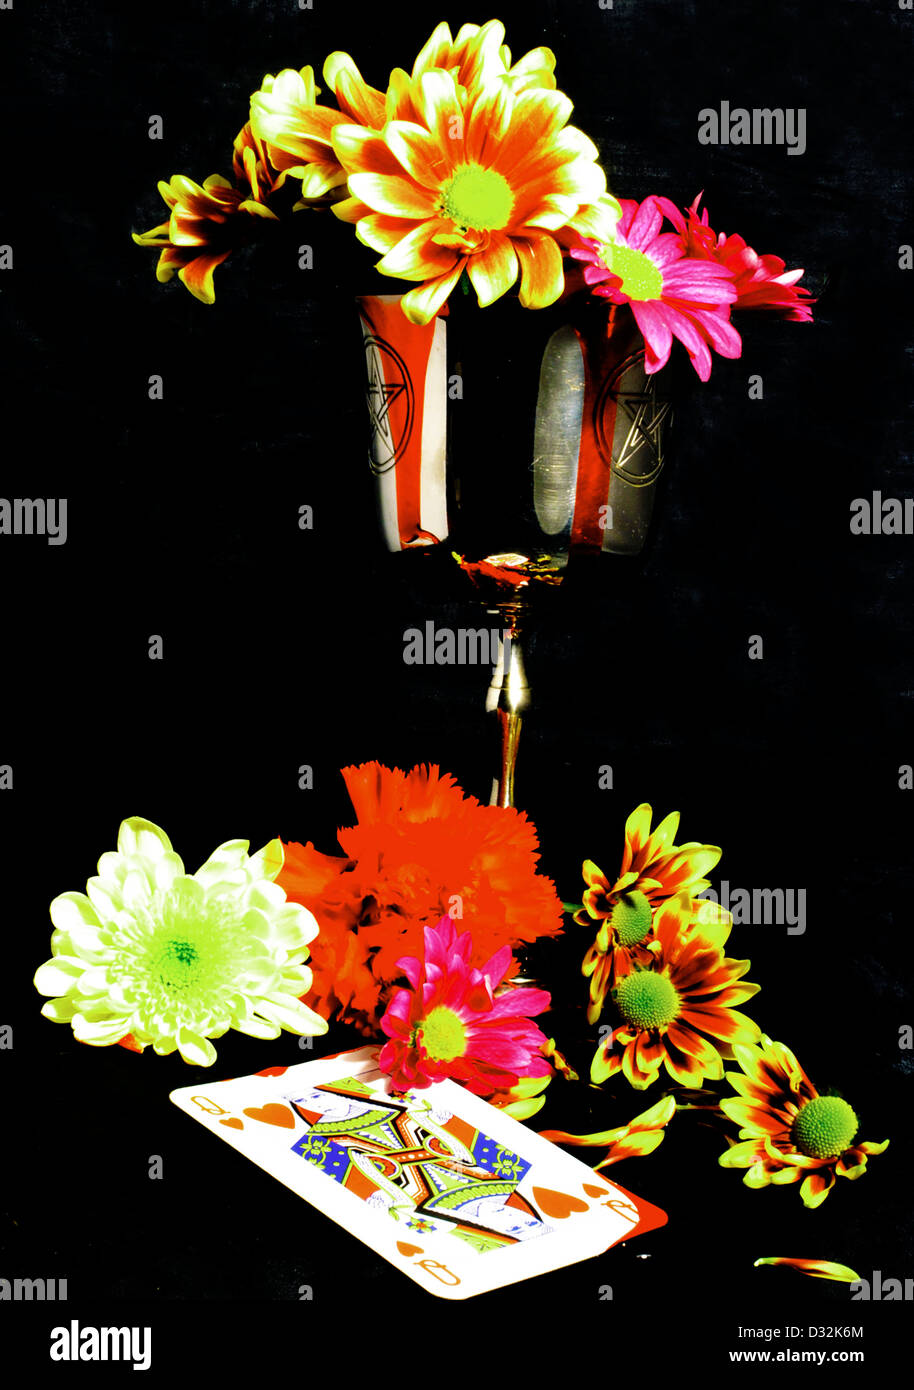 flowers with goblet pentagram and queen of hearts - Stock Image